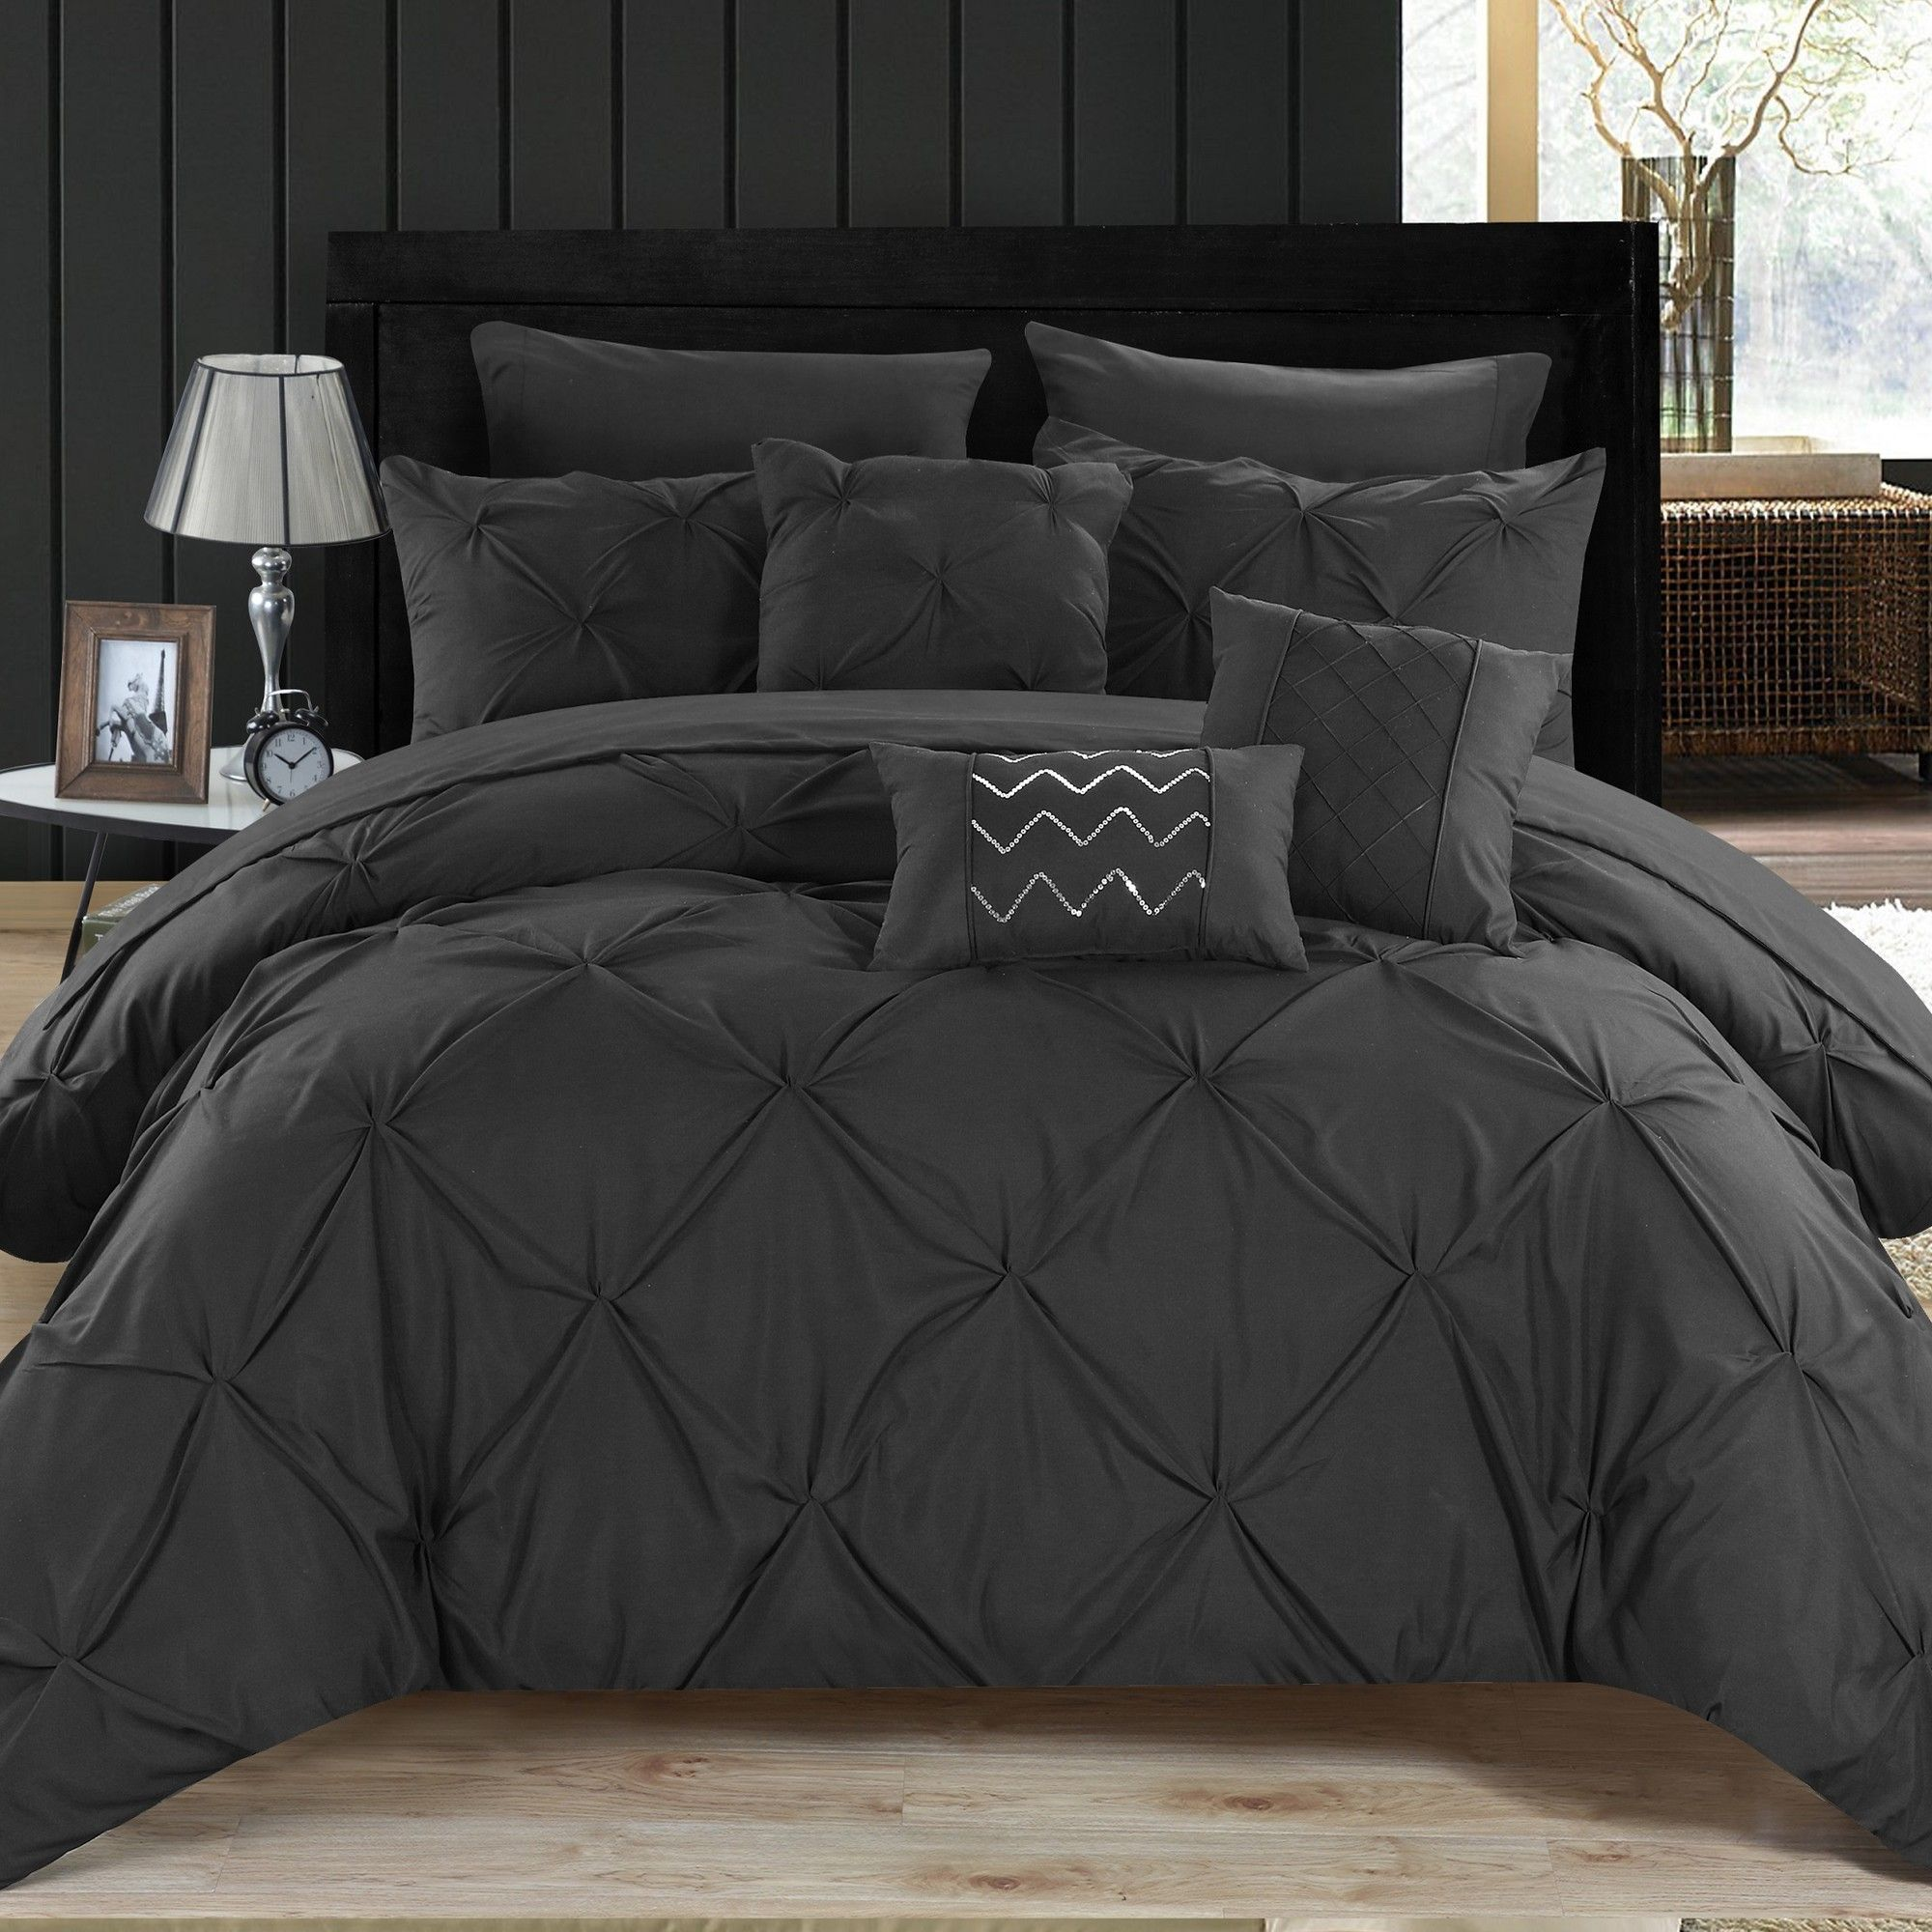 Shop Wayfair for Bedding Sets to match